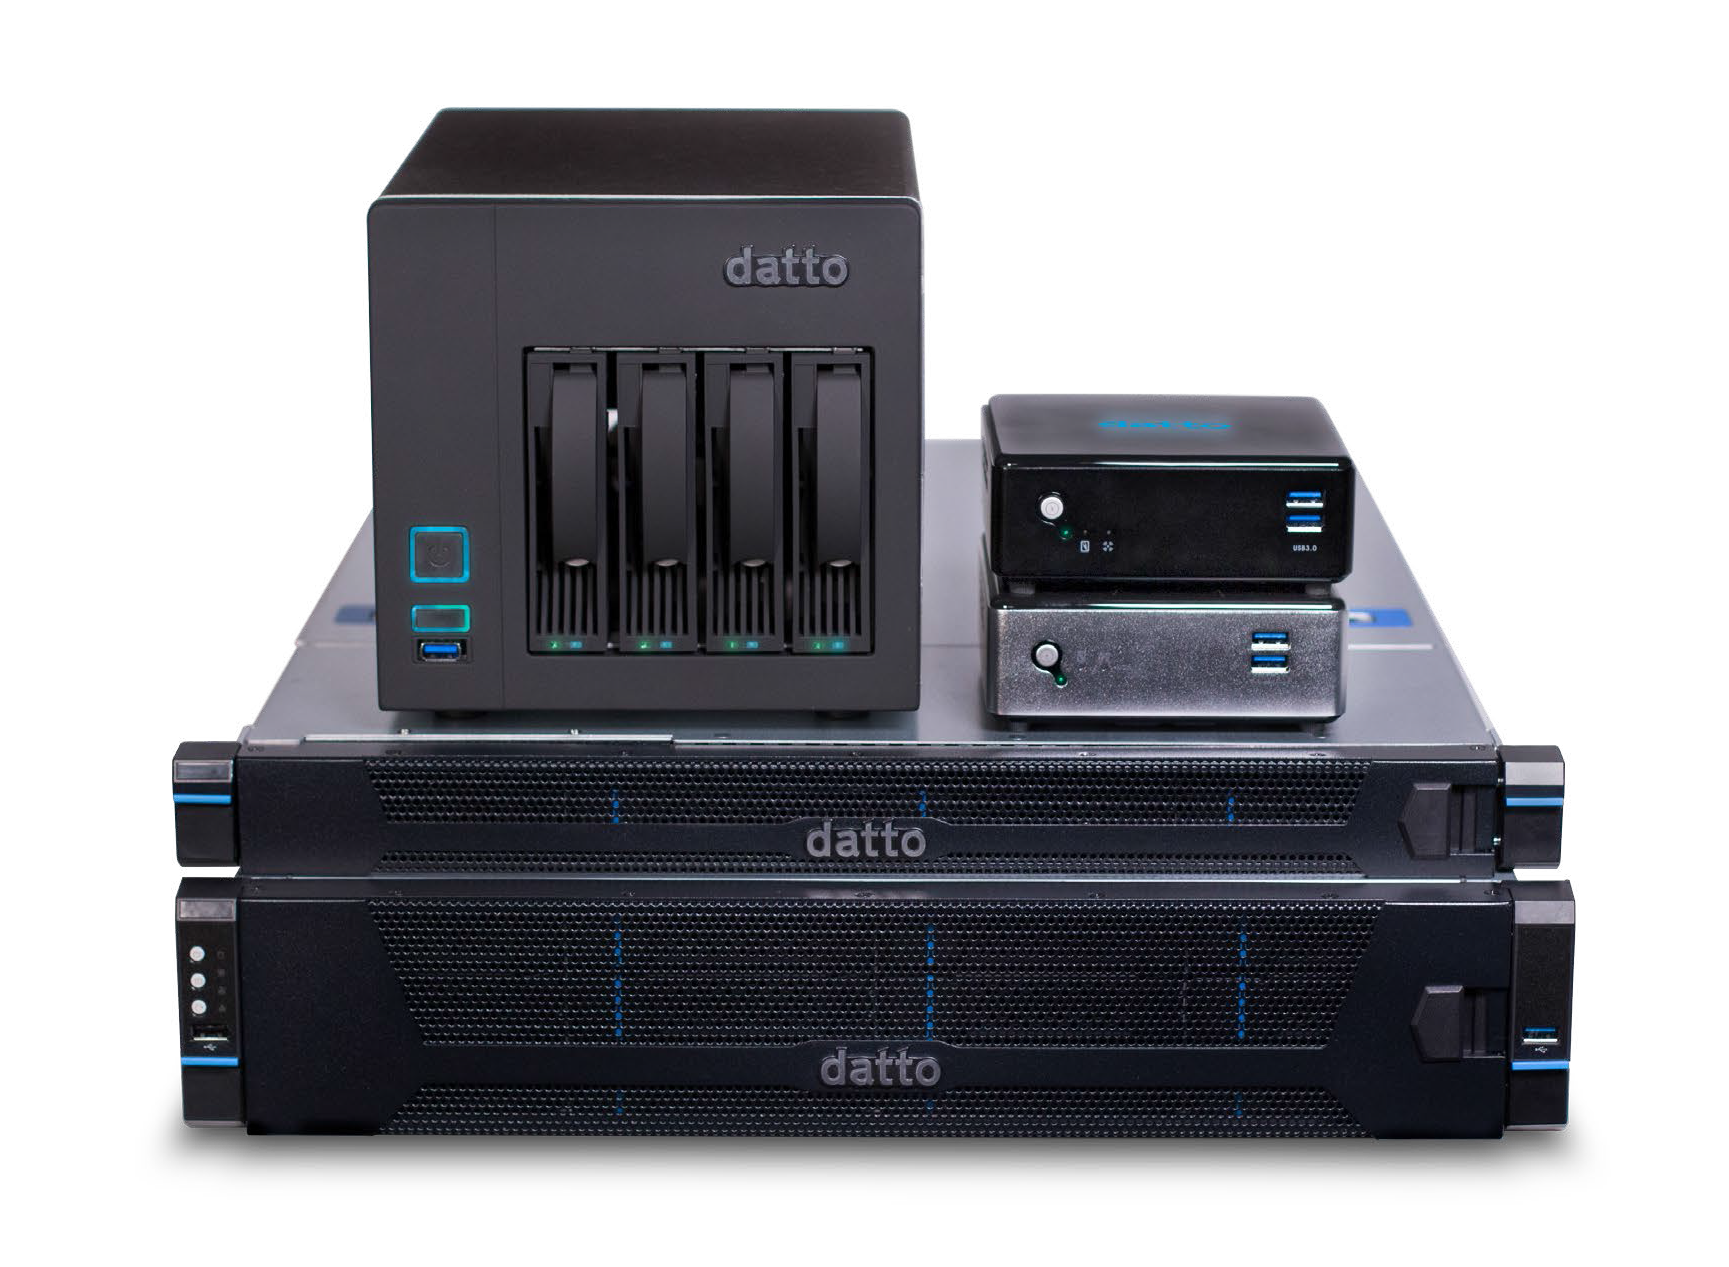 Datto_Product_Family_Brochure-5.png